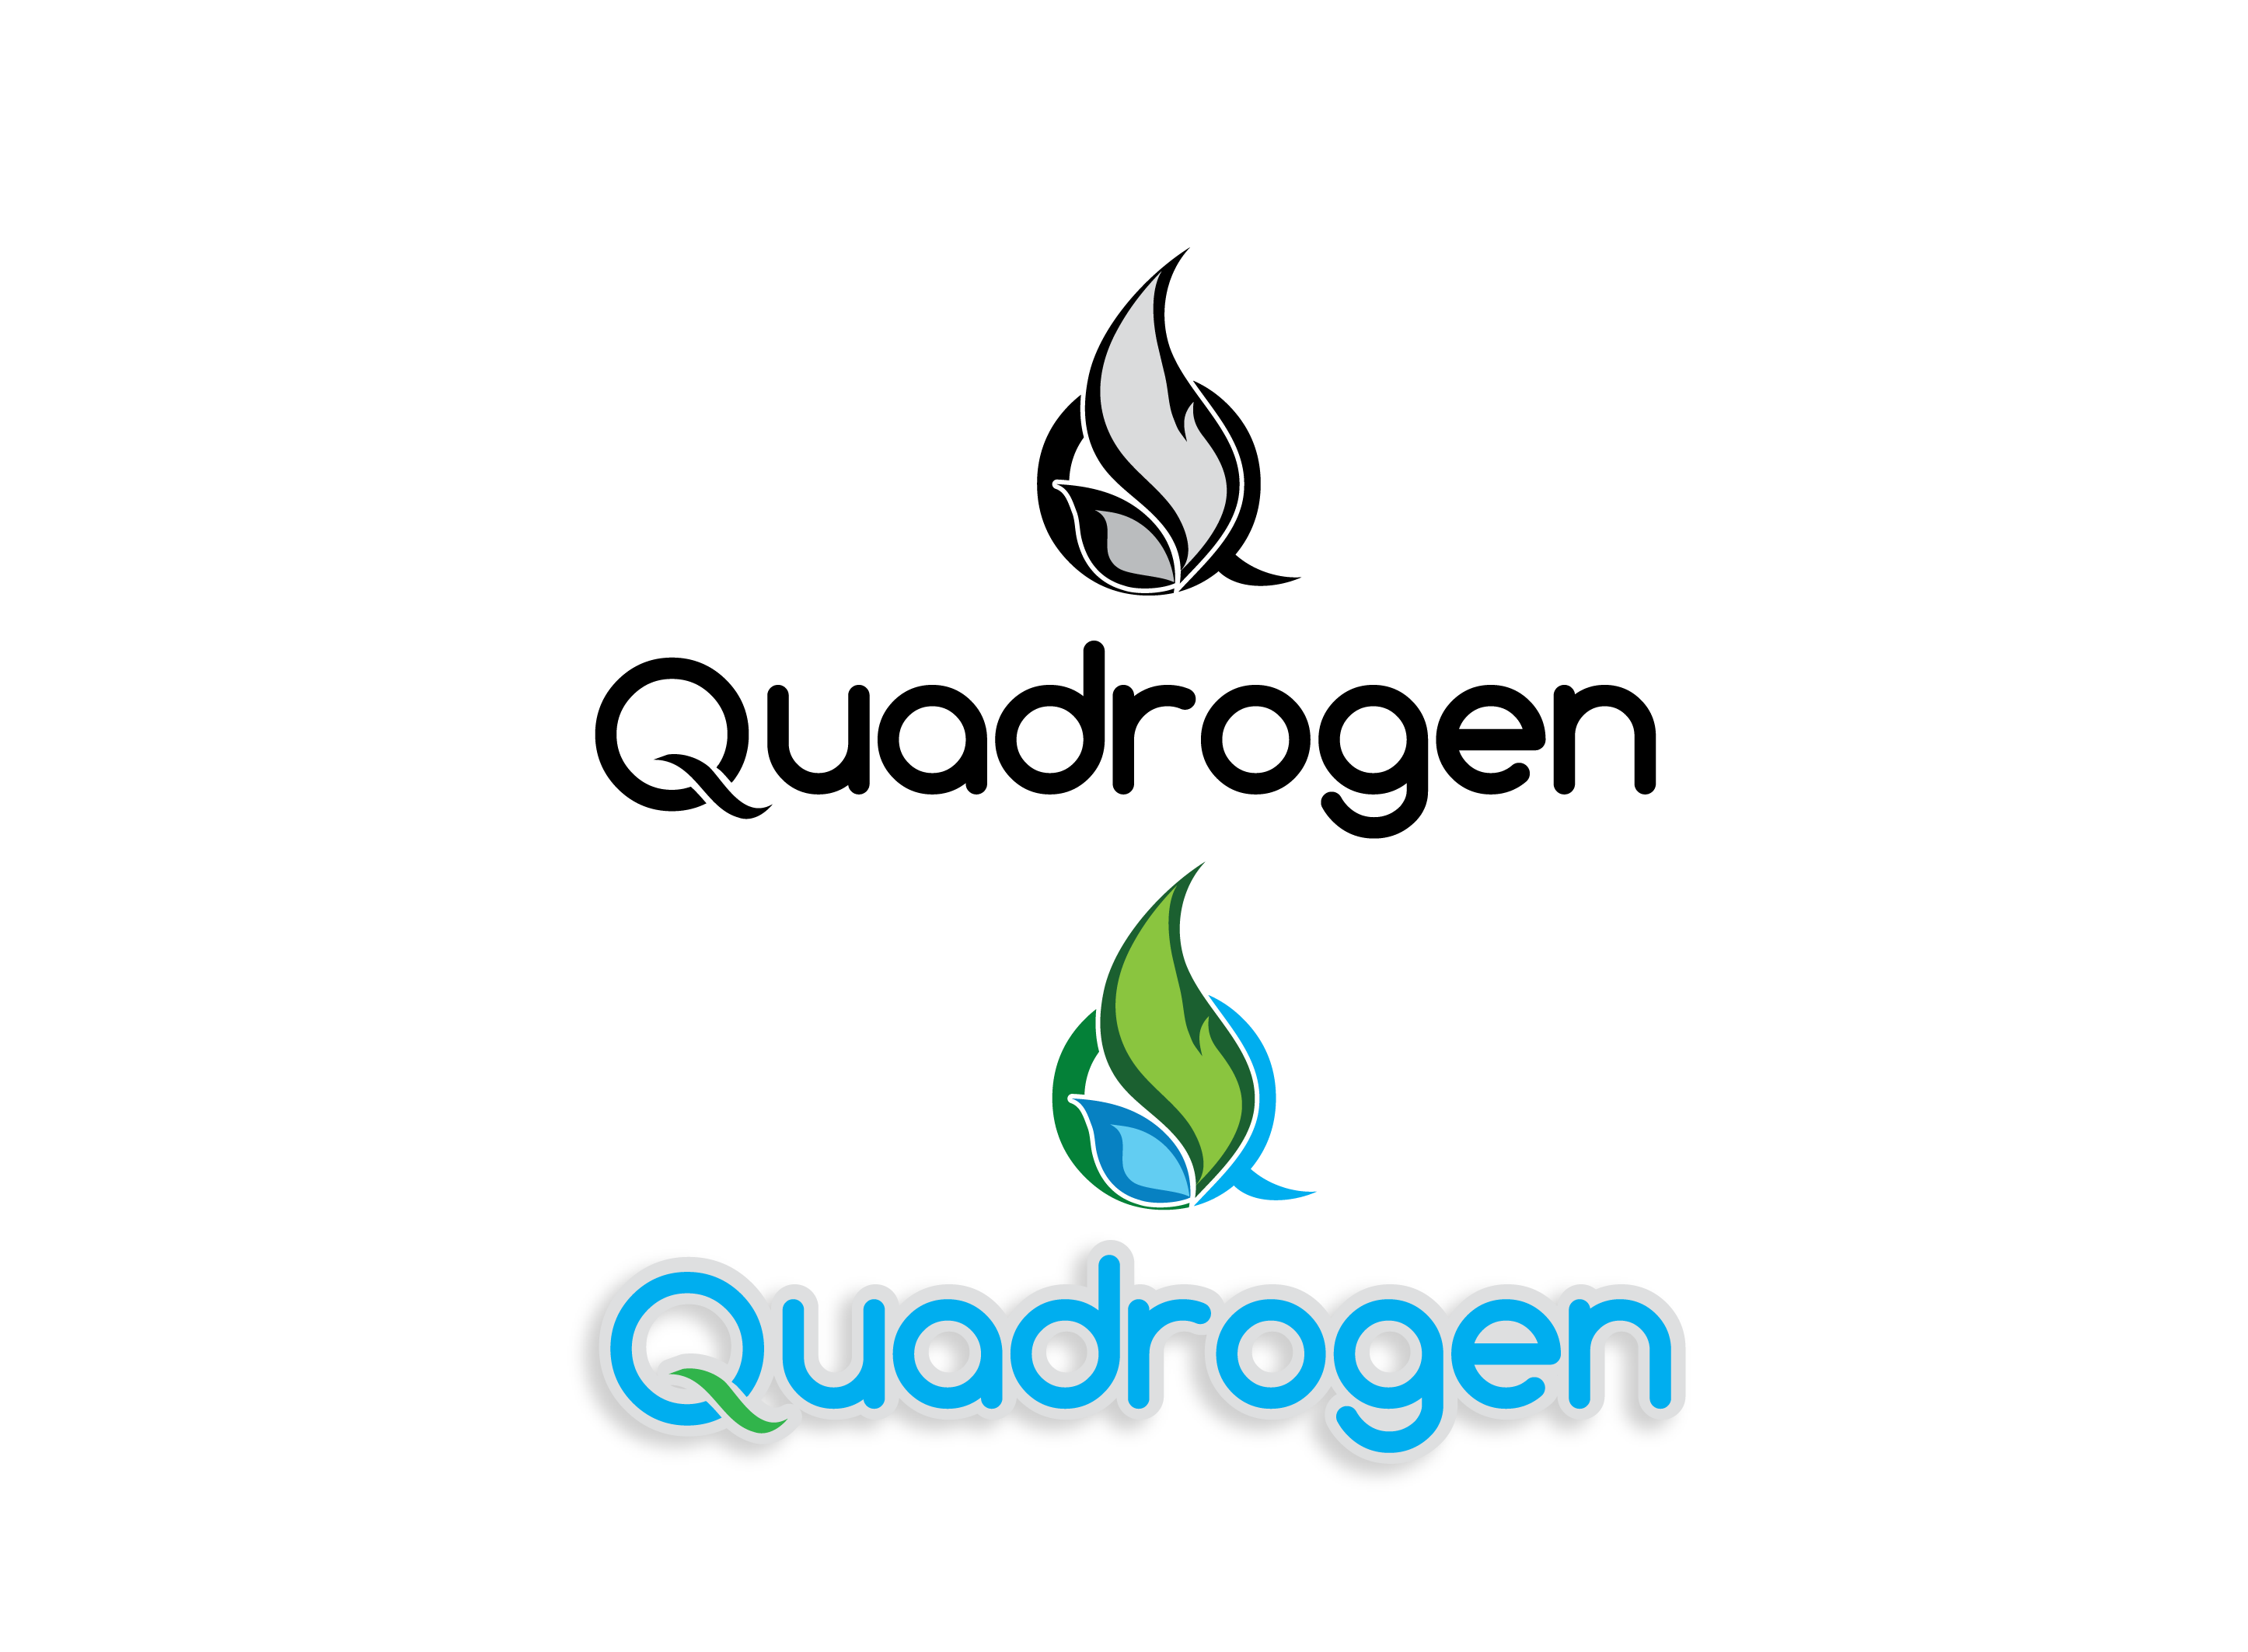 Logo Design by 354studio - Entry No. 168 in the Logo Design Contest New Logo Design for Quadrogen Power Systems, Inc.